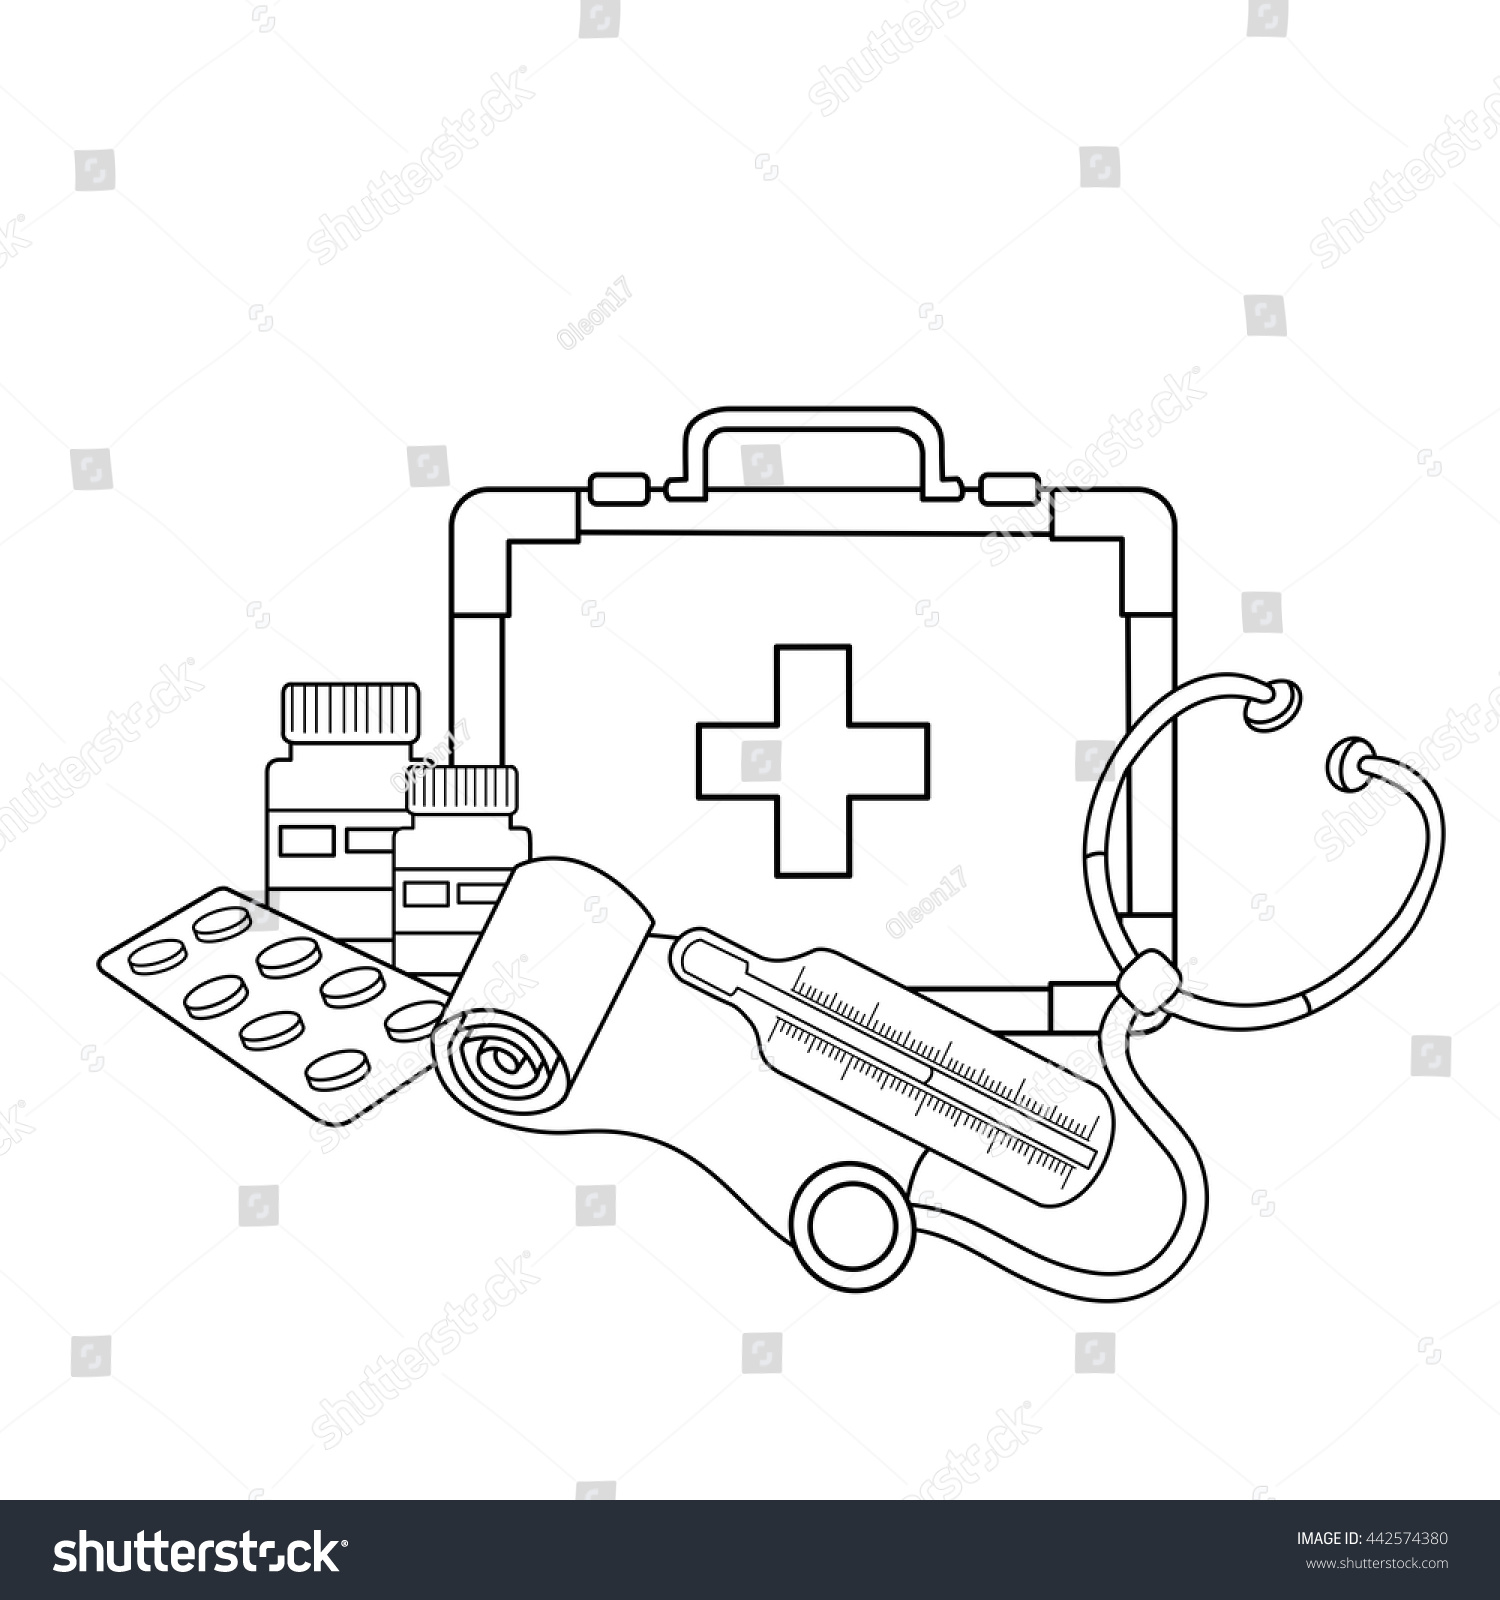 Coloring instruments - Coloring Page Outline Of Medical Instruments Profession Medicine Medical Logo Coloring Book